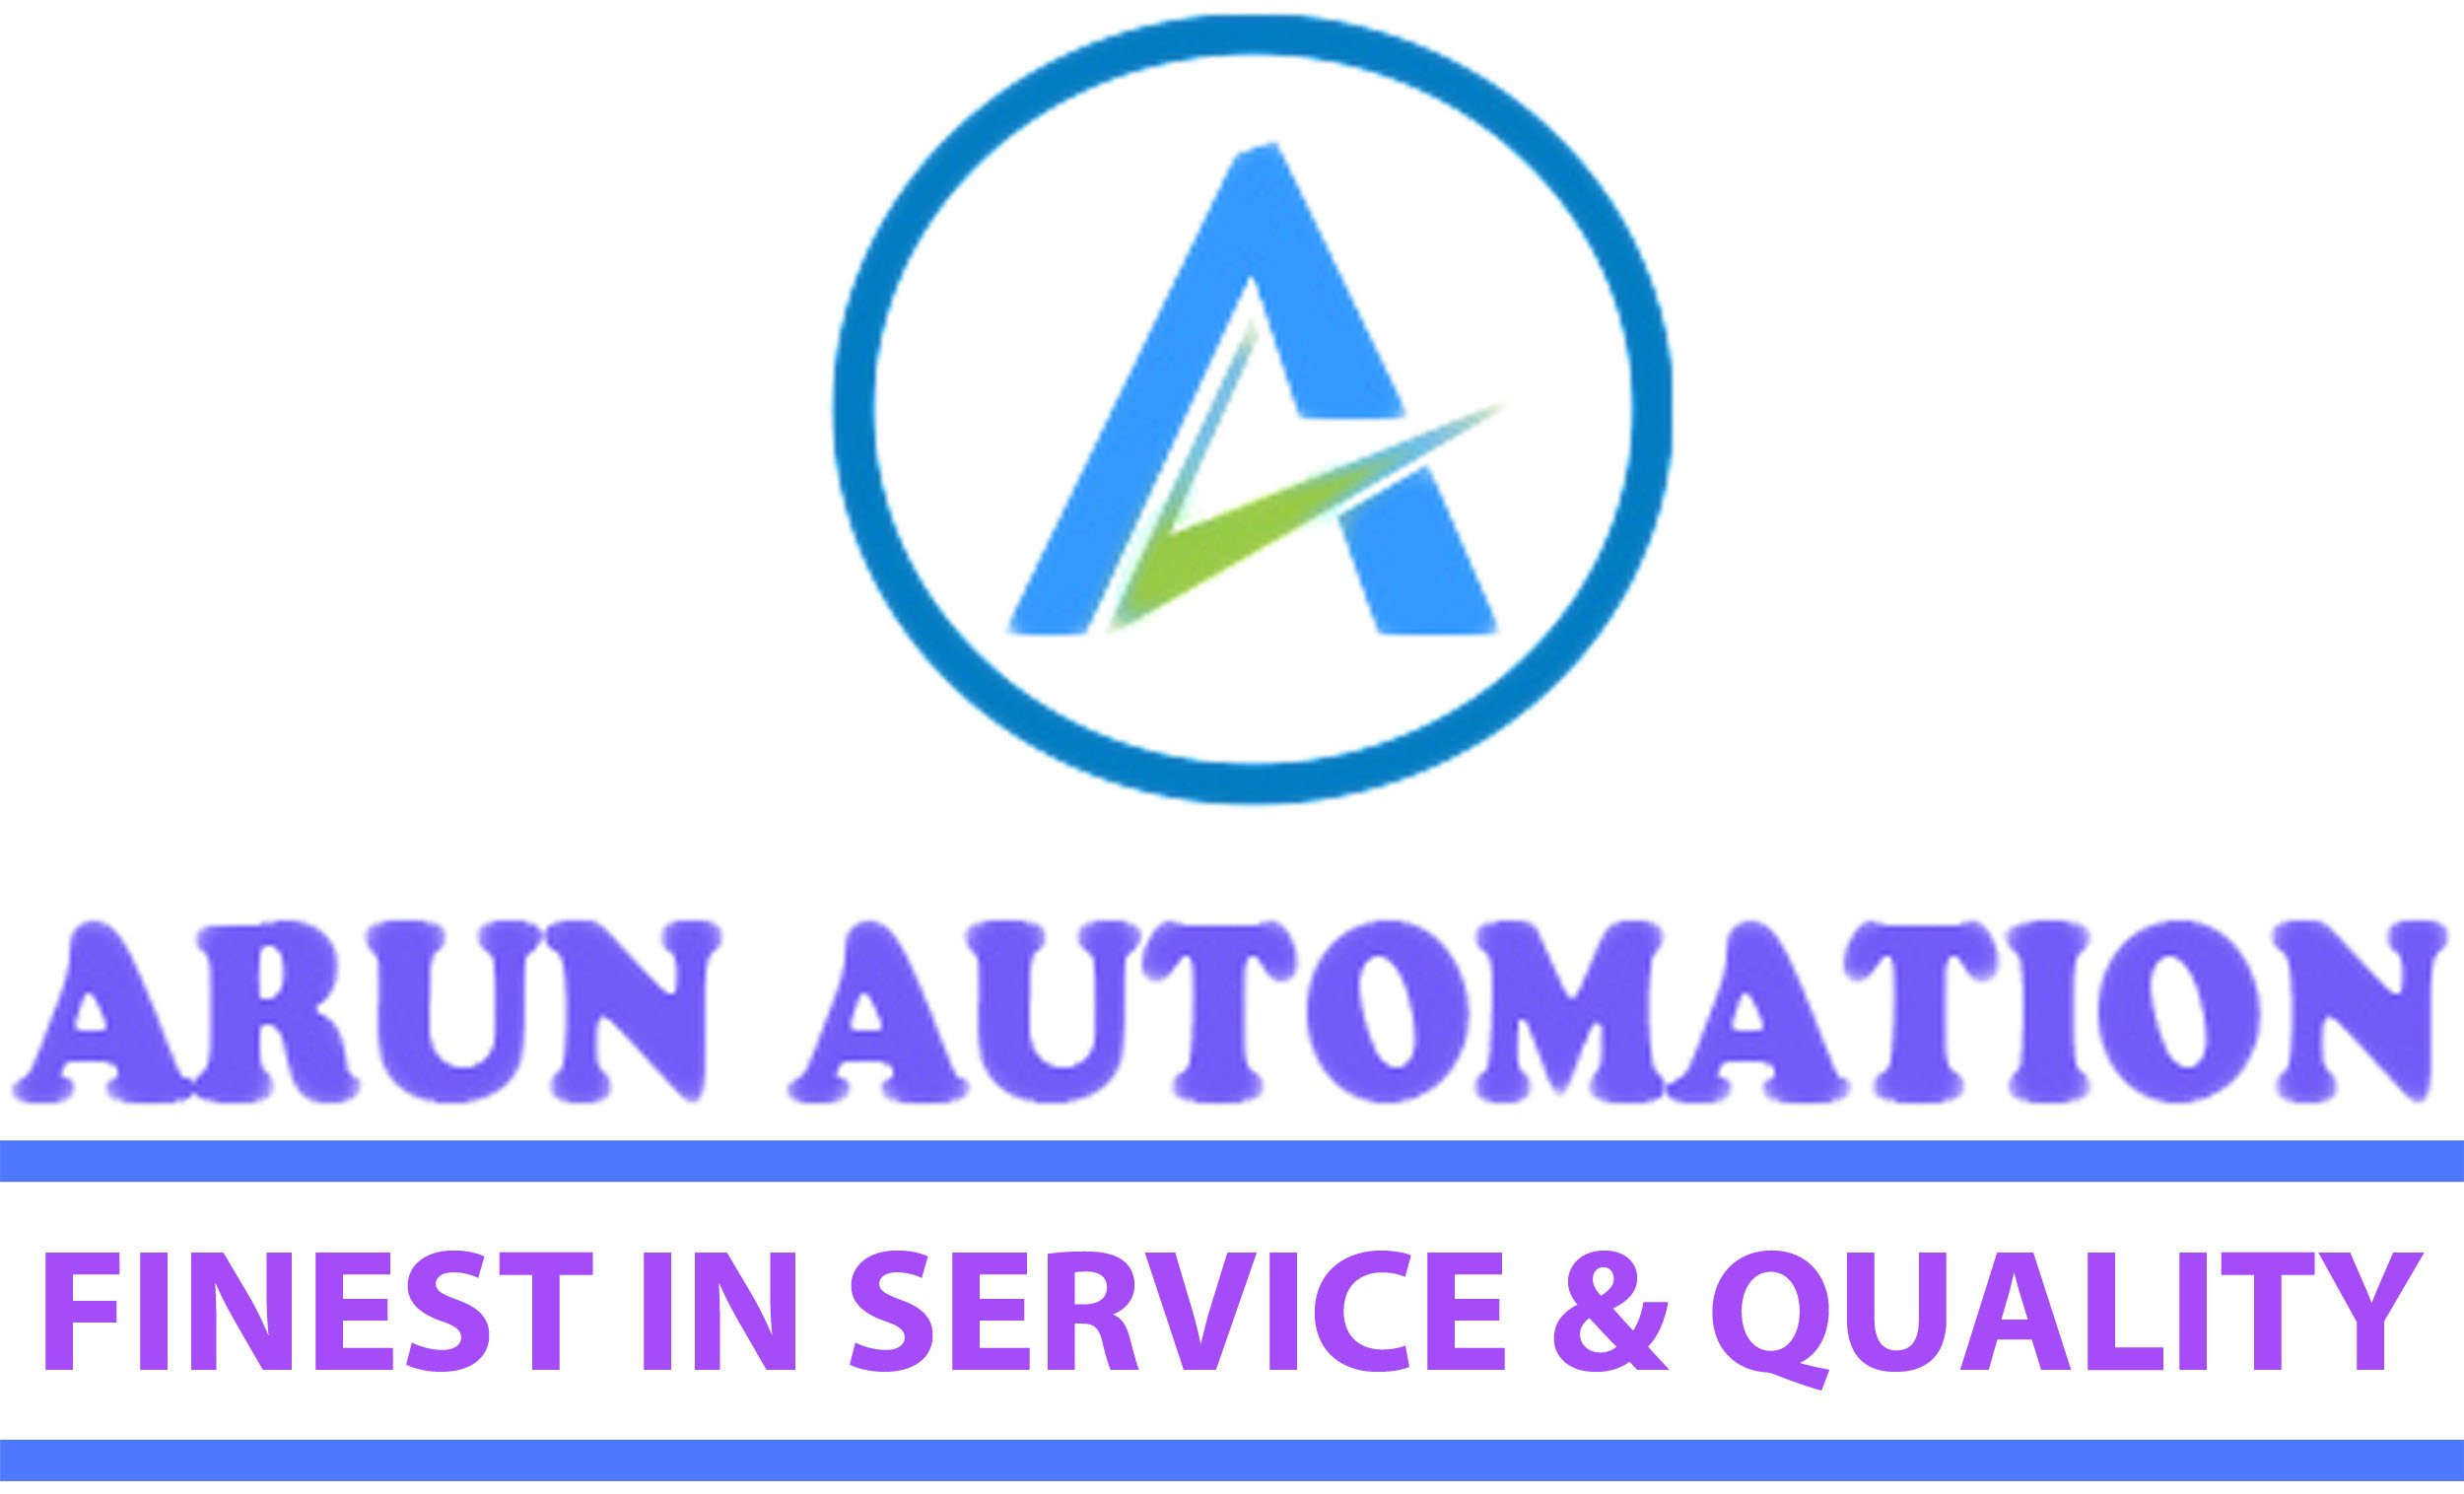 Arun Automation Kavinstar Authorized Dealers and Service Provider